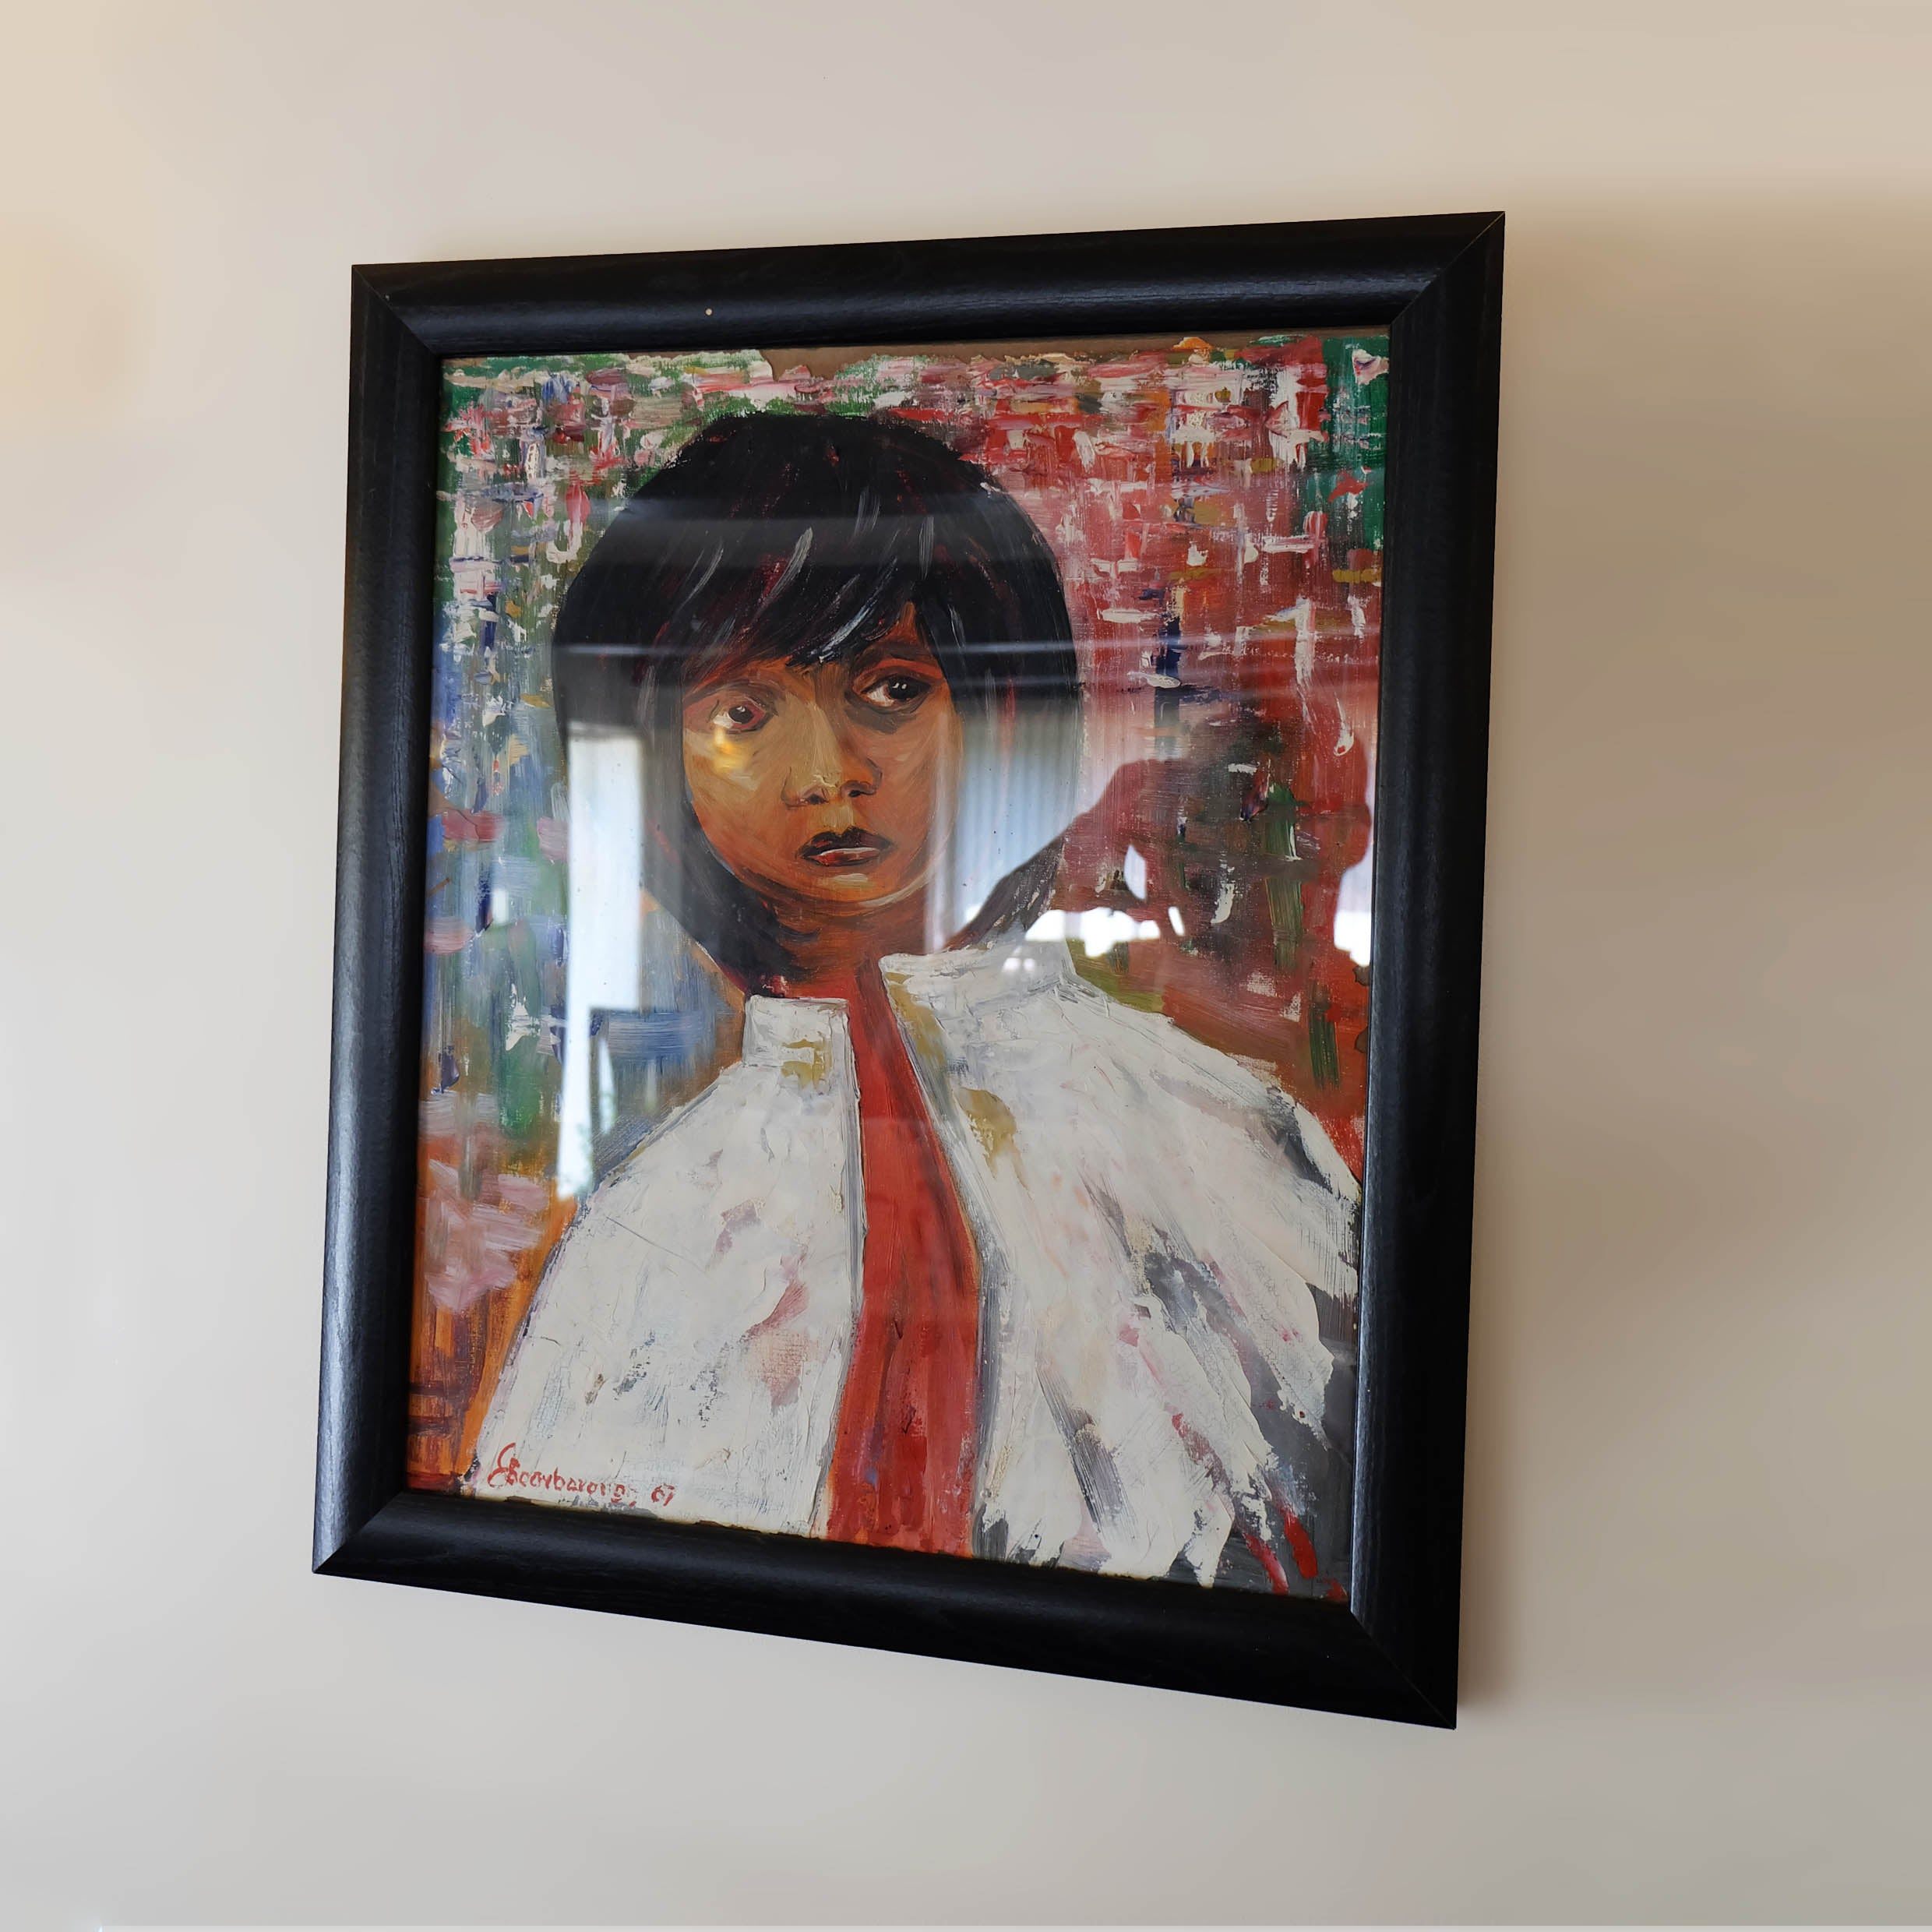 The Girl - Original Oil Painting on Canvas by Joe Scarborough - Joe Scarborough Art